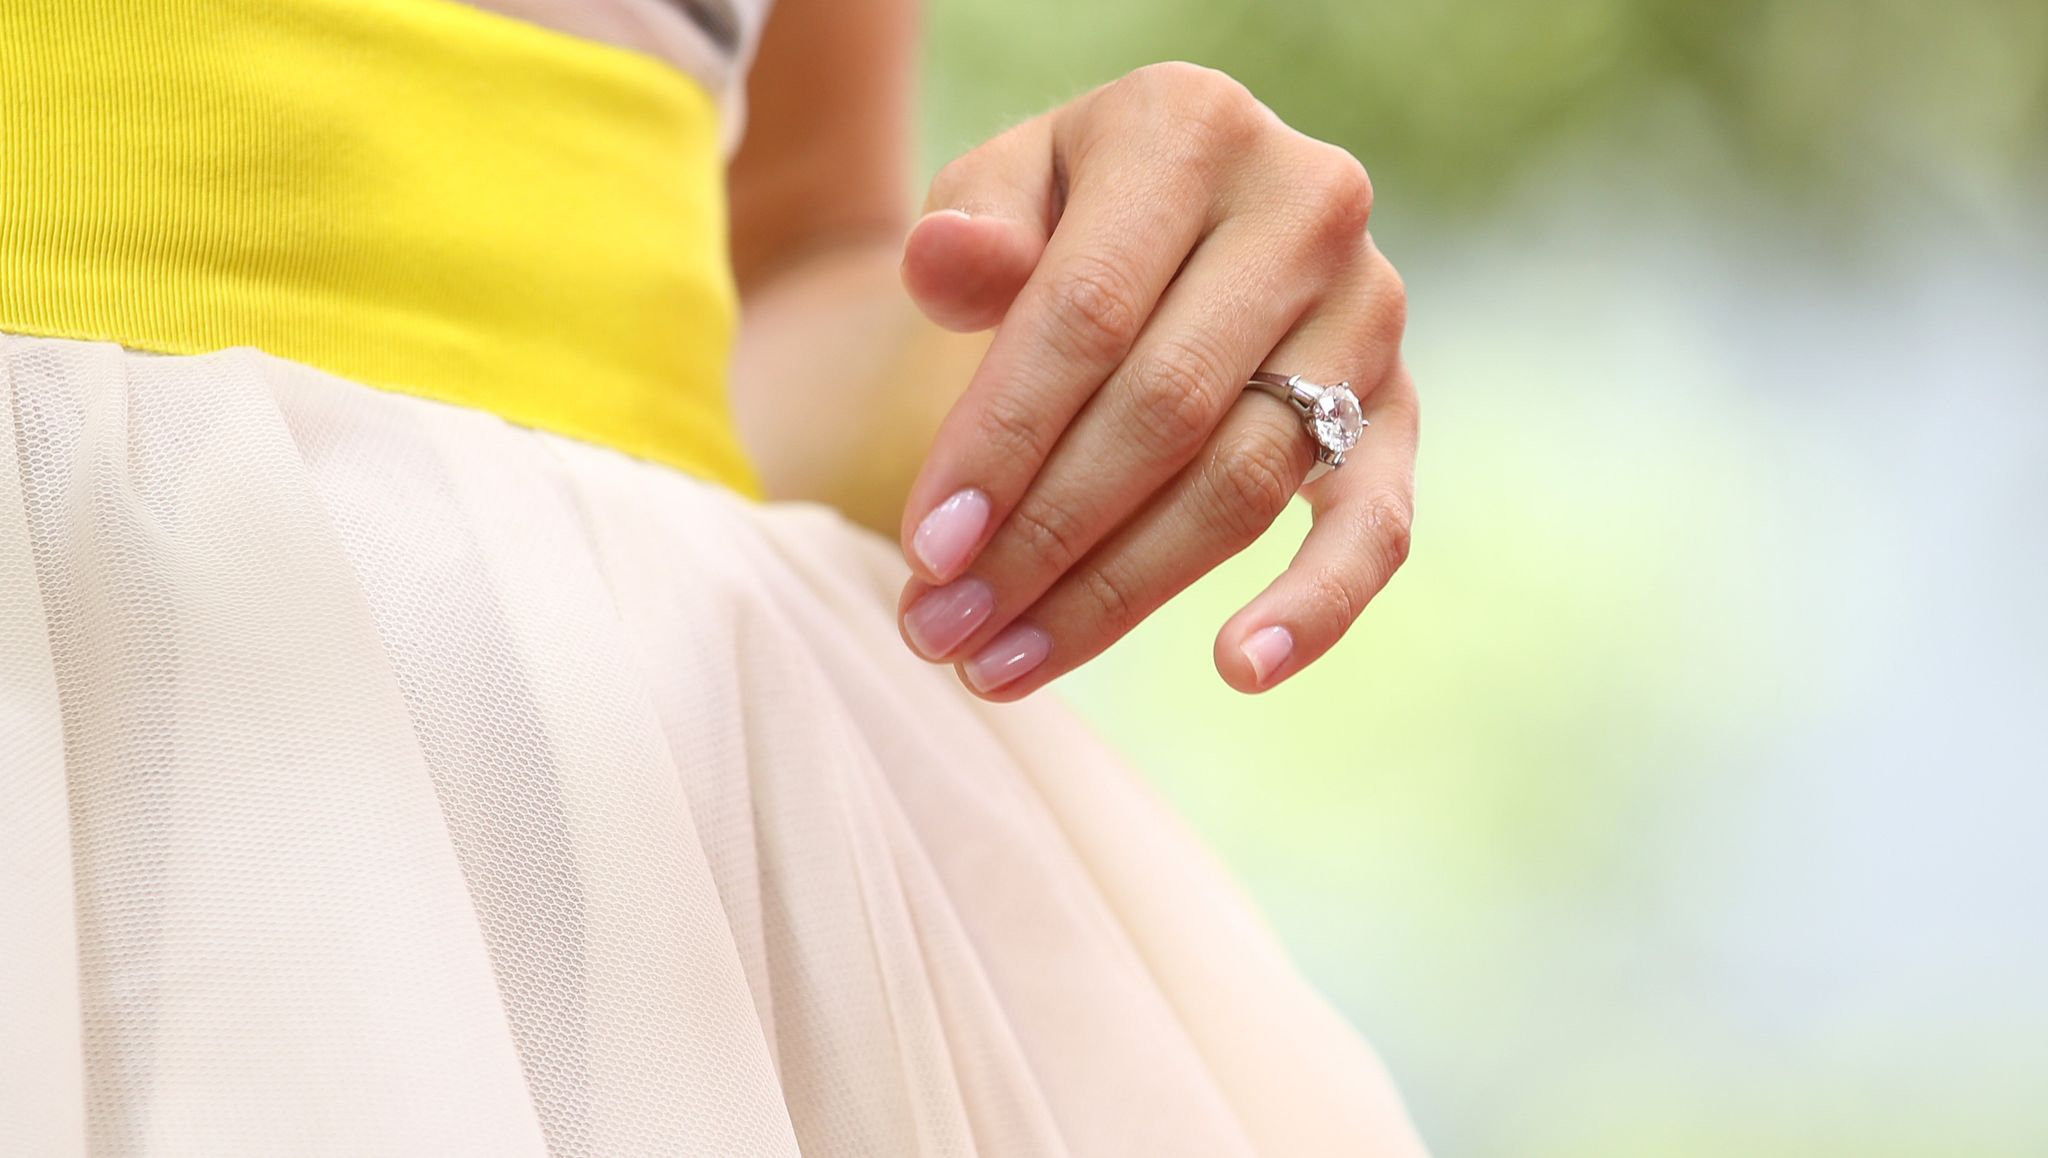 How to shop for an ethical engagement ring